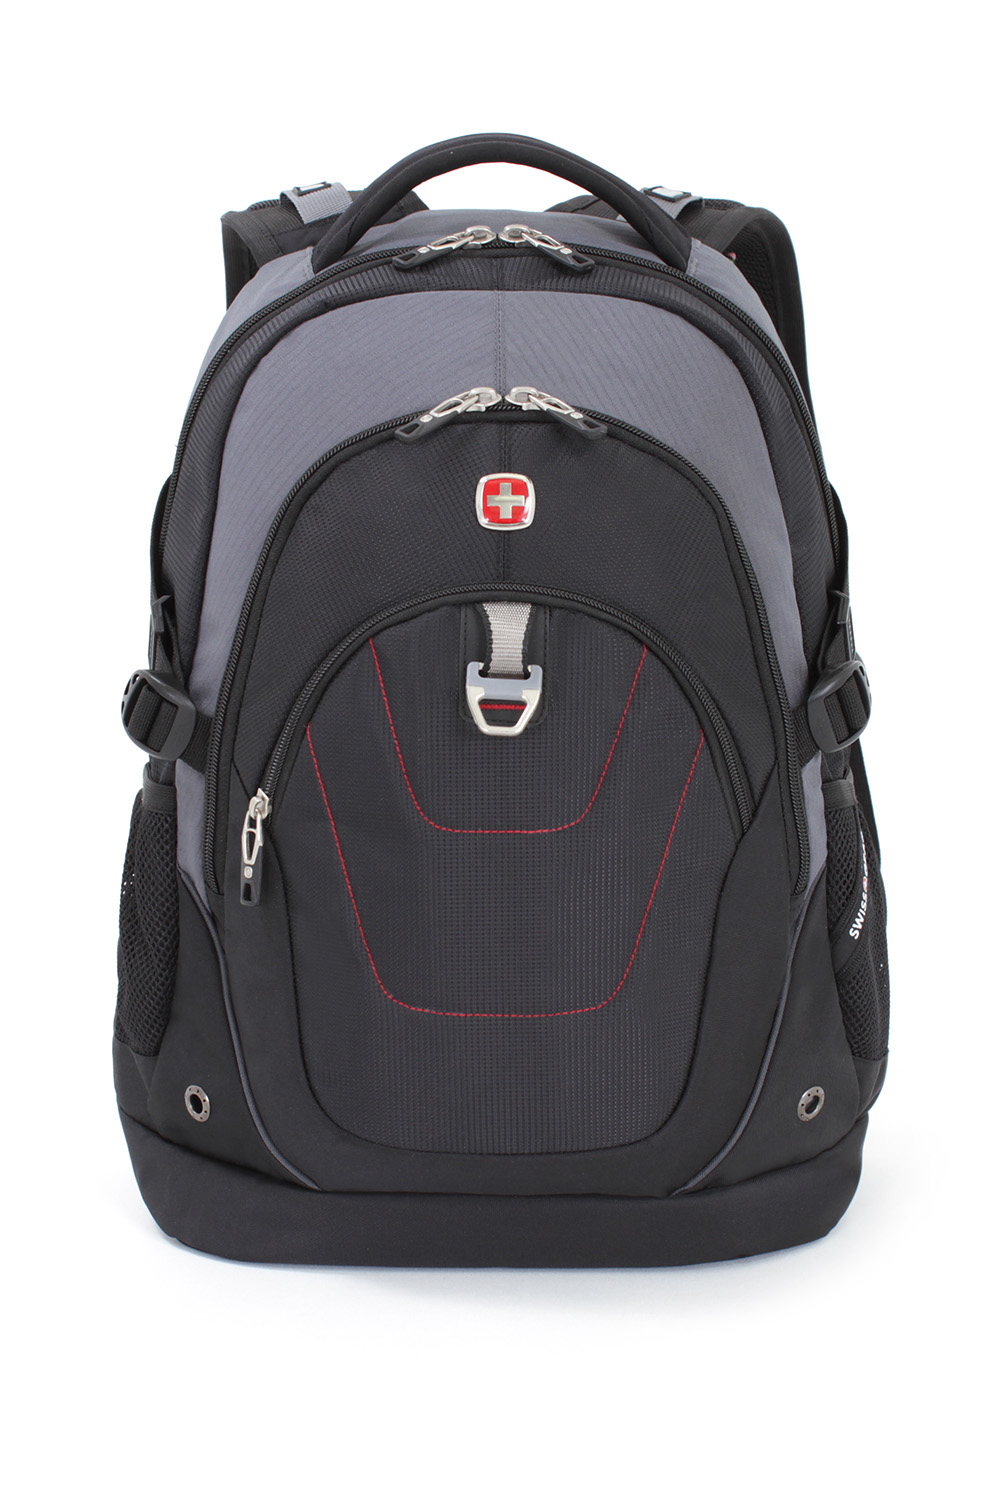 SWISSGEAR 6688 Laptop Backpack